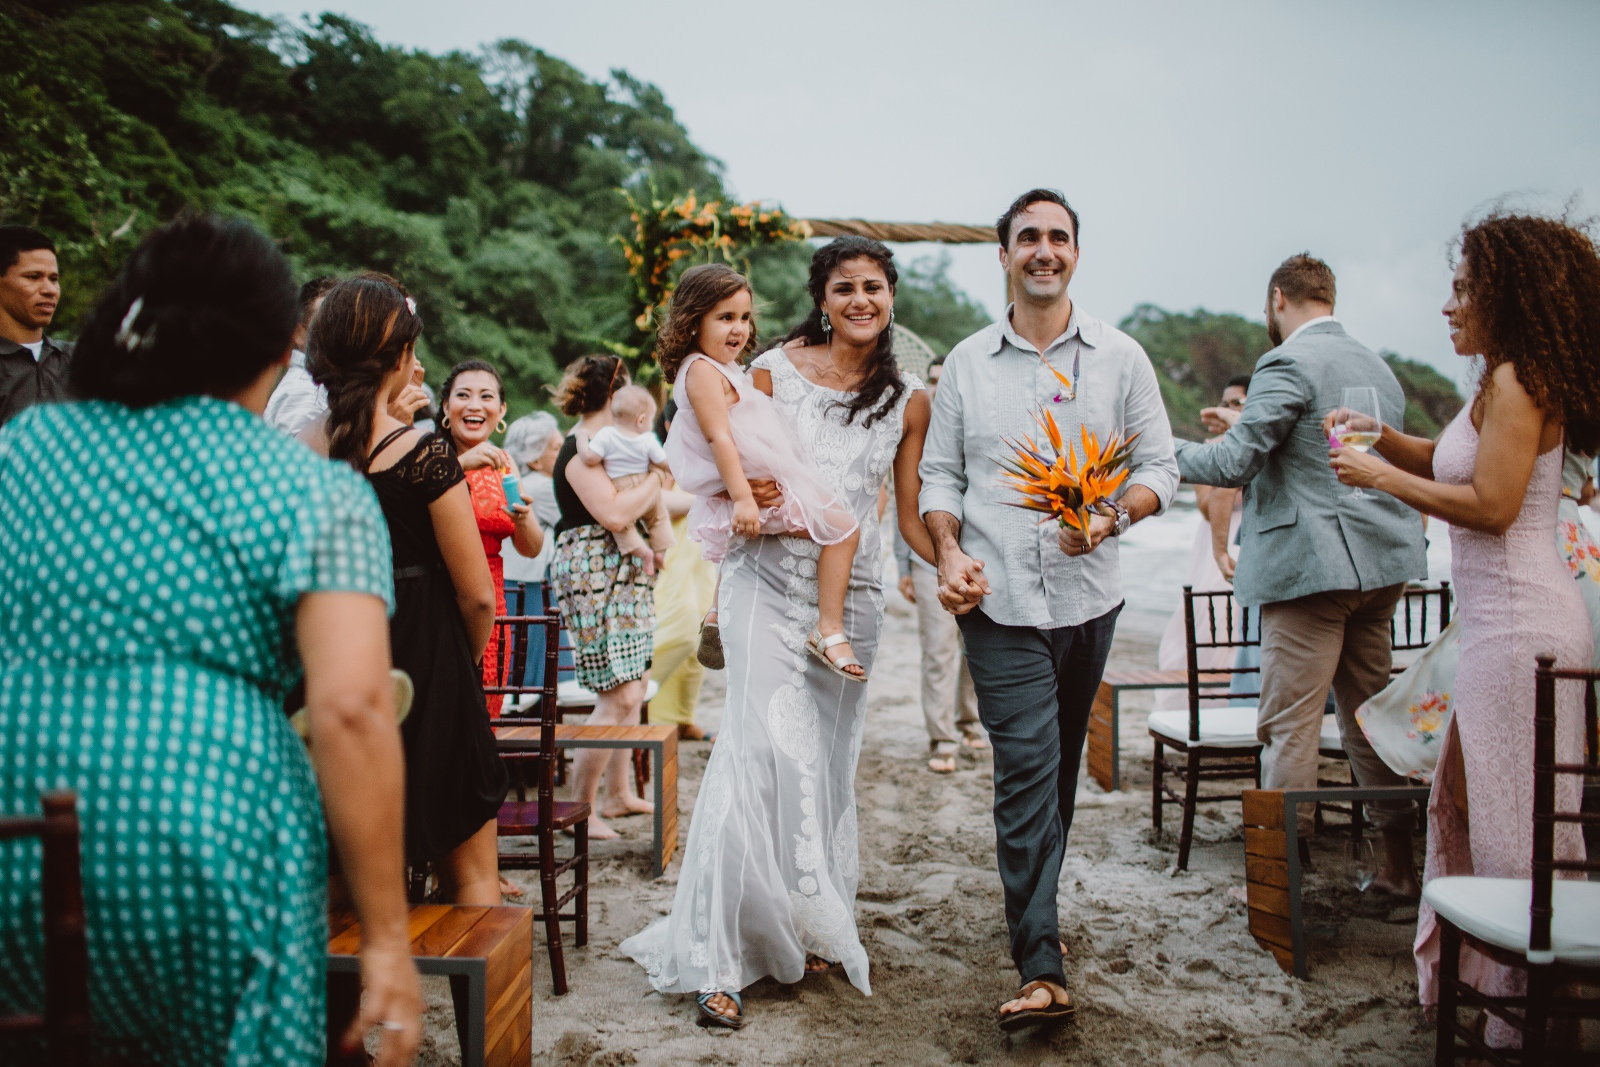 Wedding photographer in Coco beach, Costa Rica